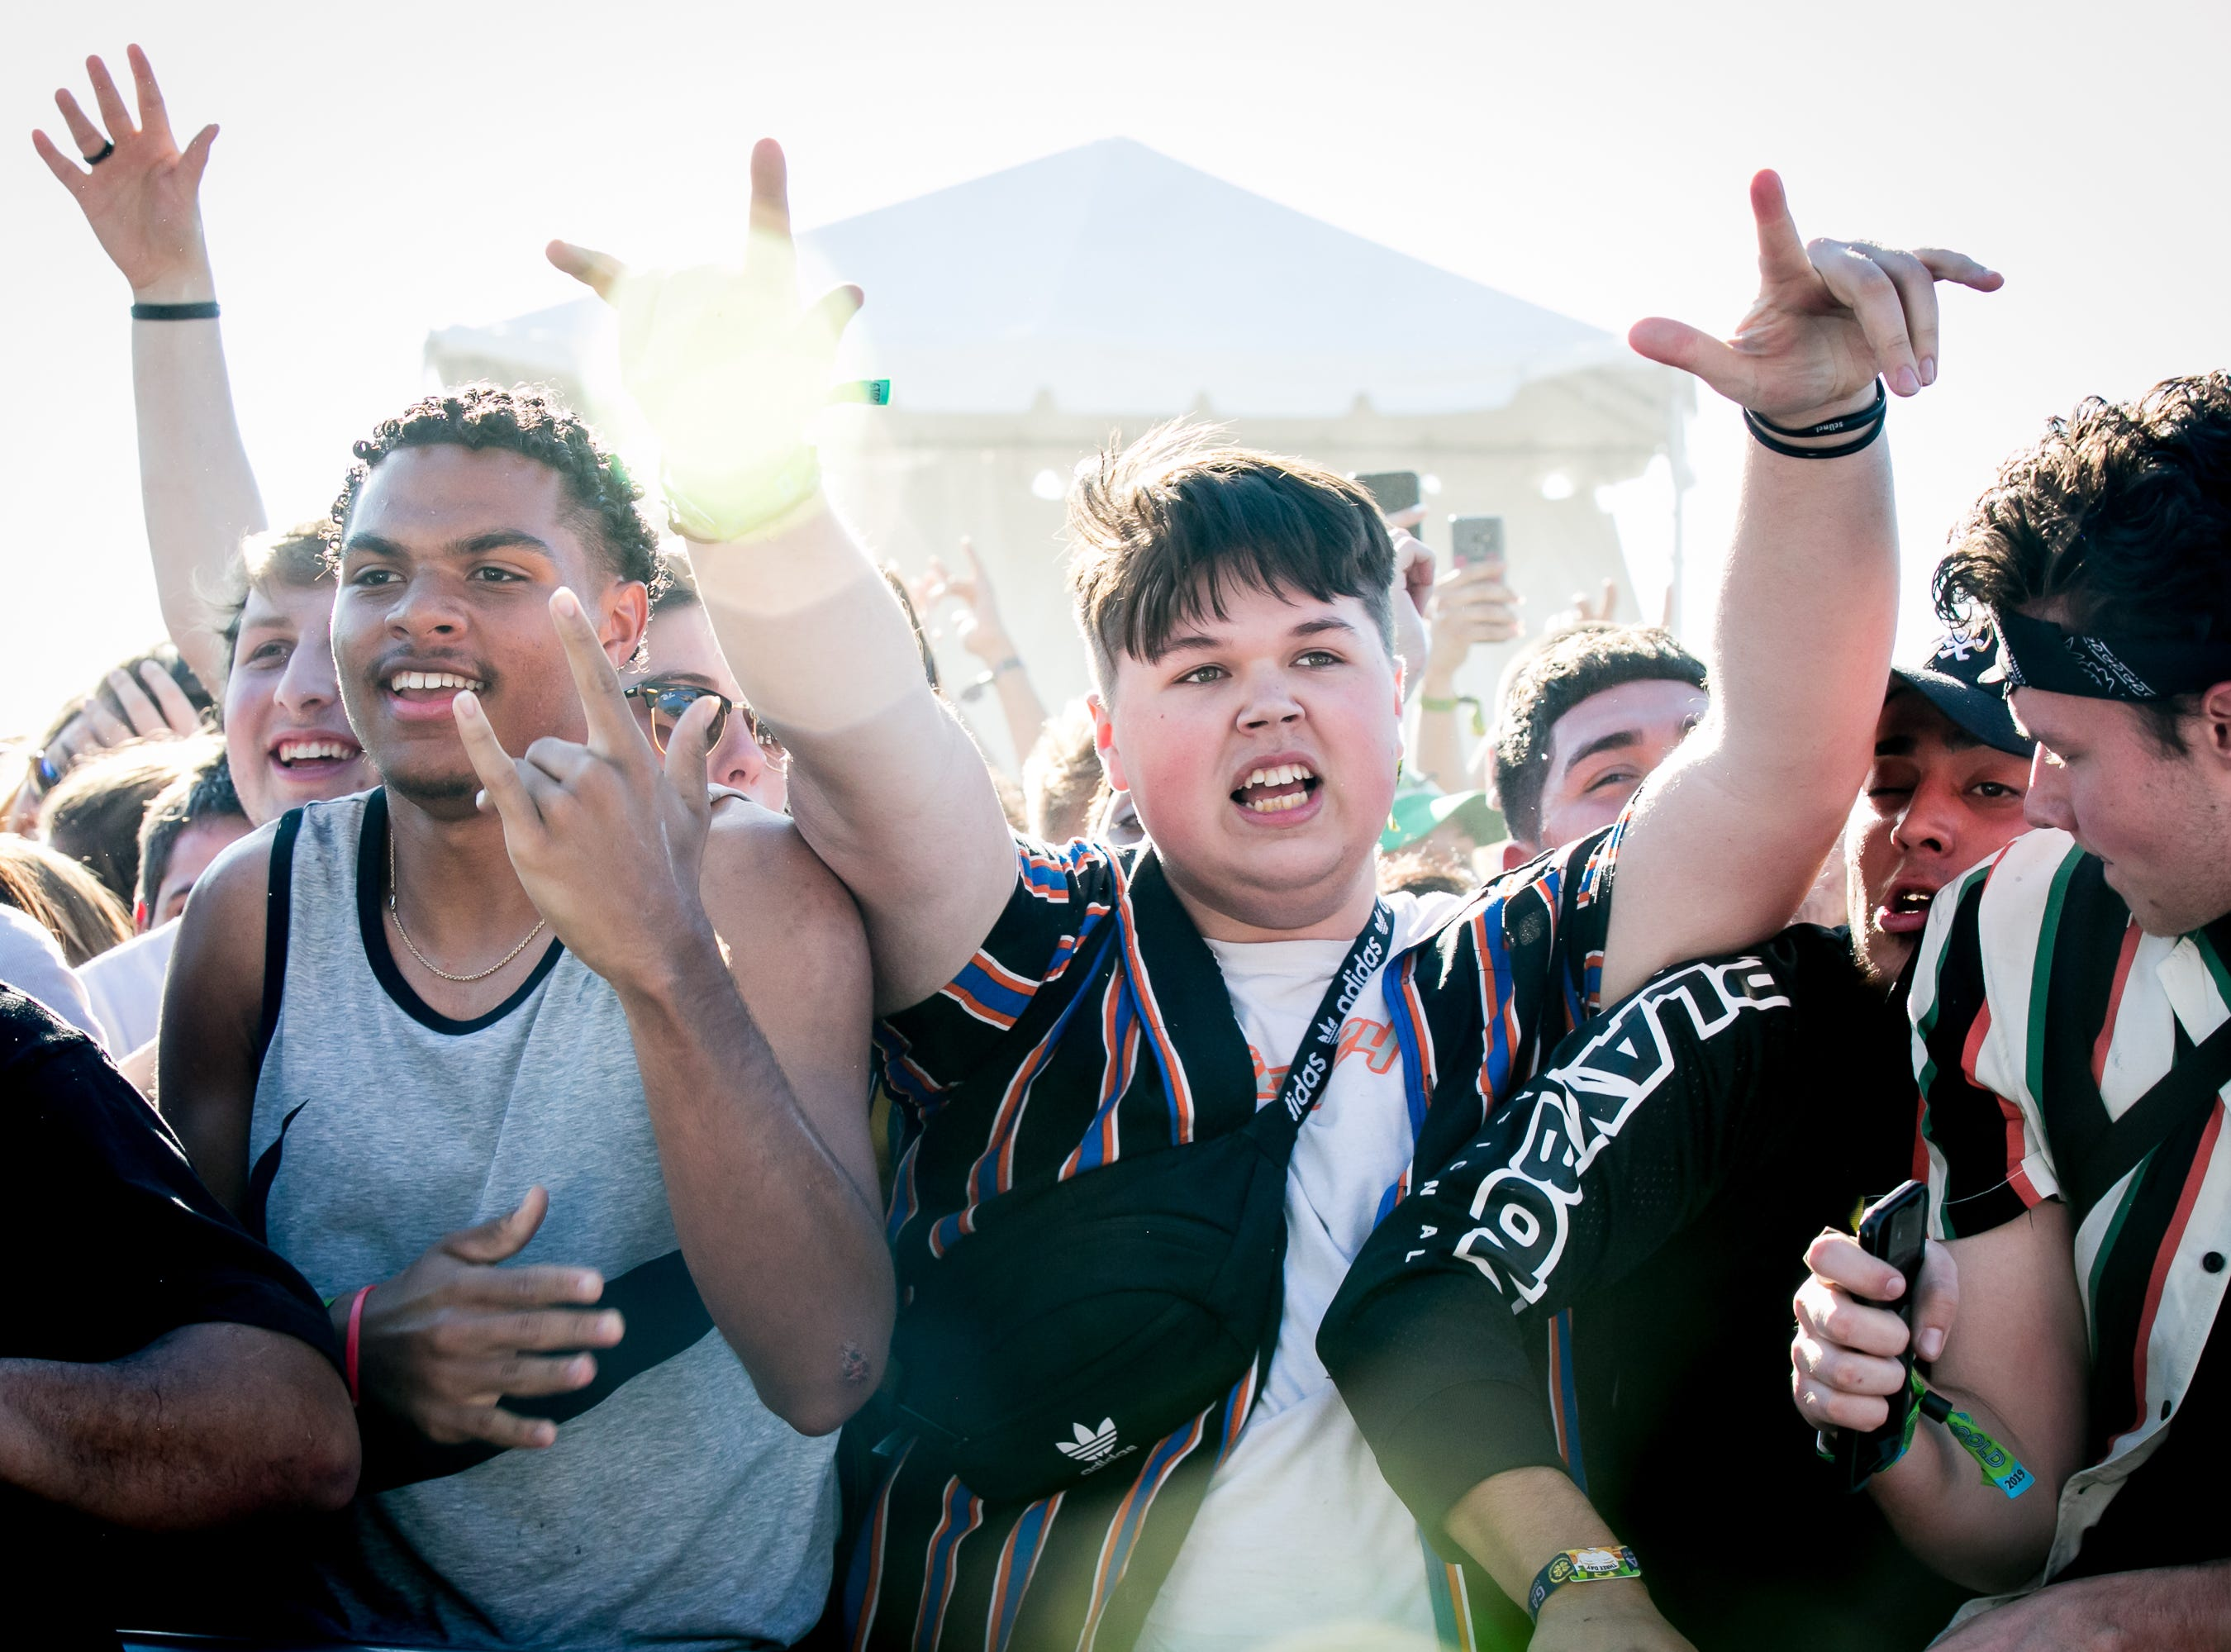 Fans went all out during Ski Mask The Slump God's set at Pot of Gold Music Festival on Sunday, March 17, 2019.